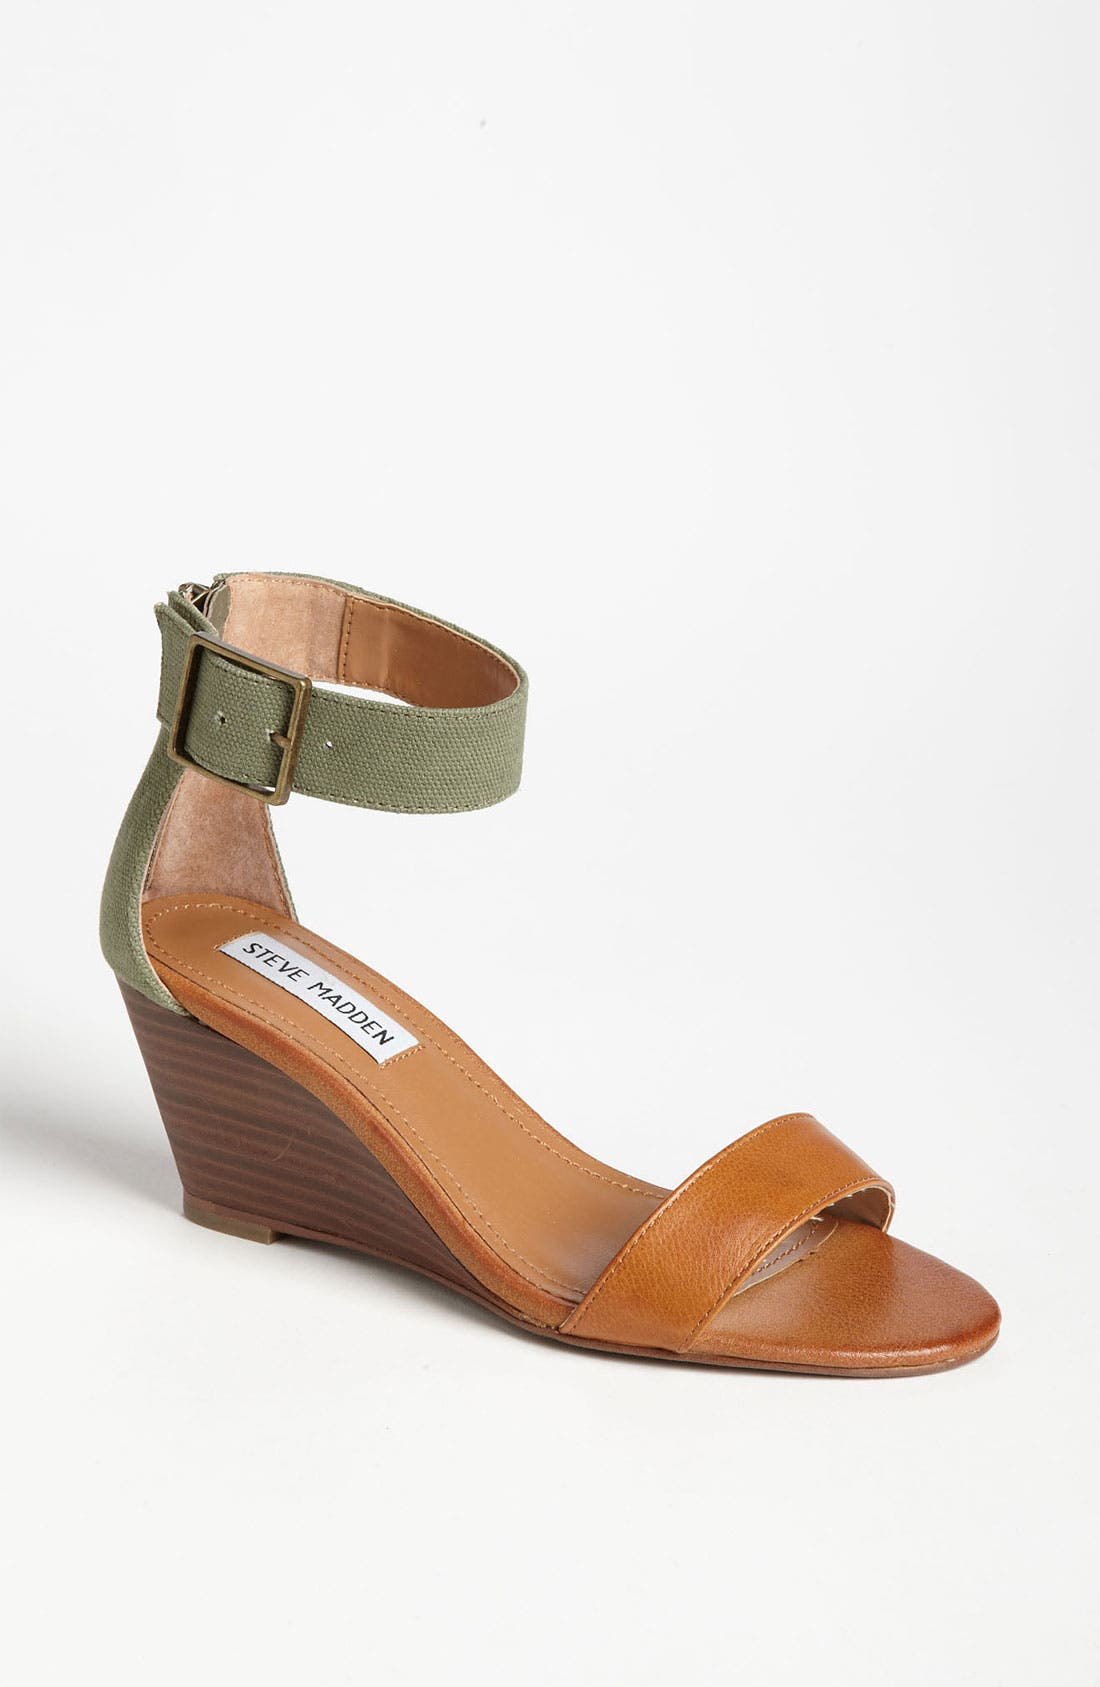 Alternate Image 1 Selected - Steve Madden 'Nanncy' Sandal